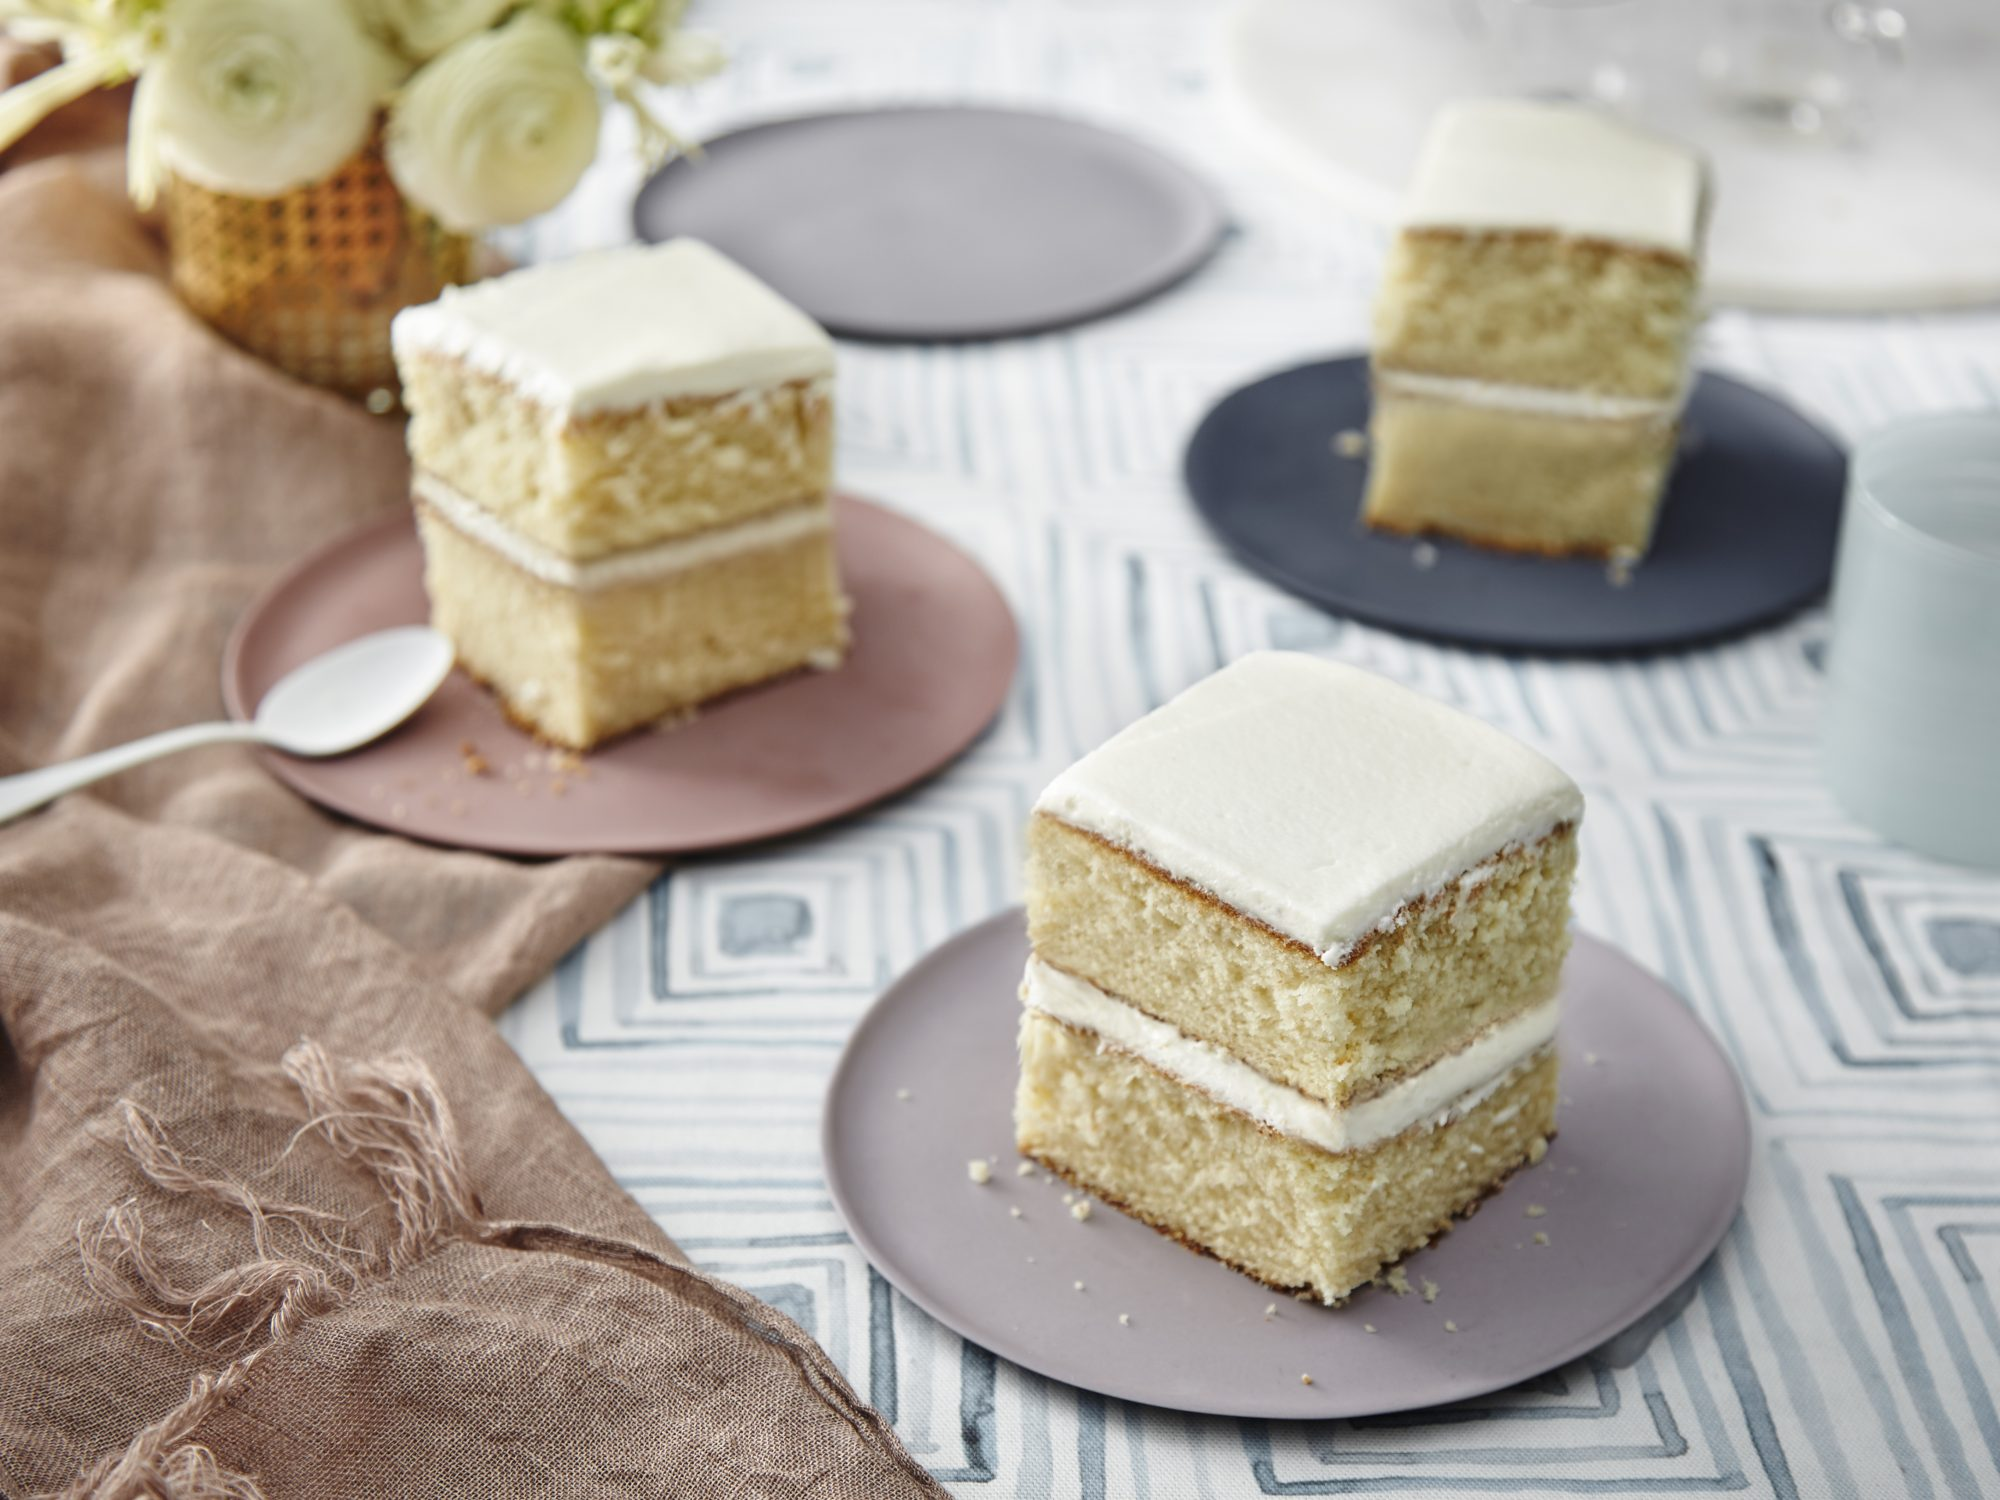 The Basic Yellow Cake Recipe You Can Memorize in Minutes